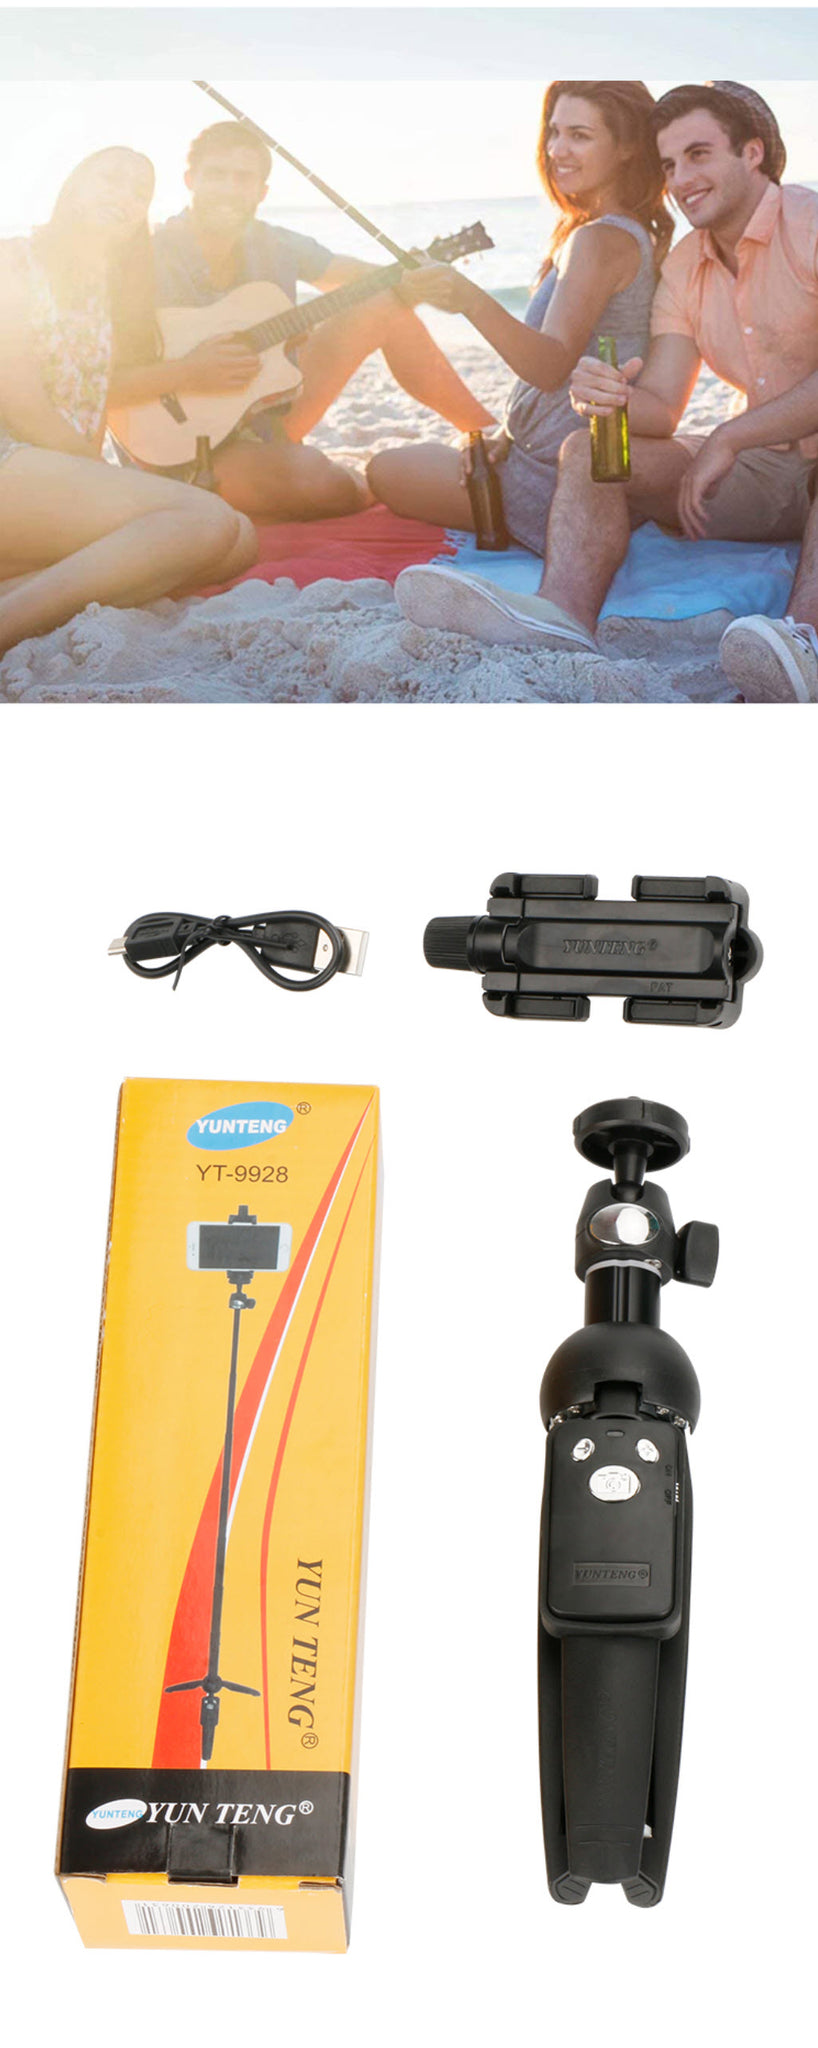 Wireless Bluetooth Super Selfie Stick Four People Taking Selfie On Beach Package Contents